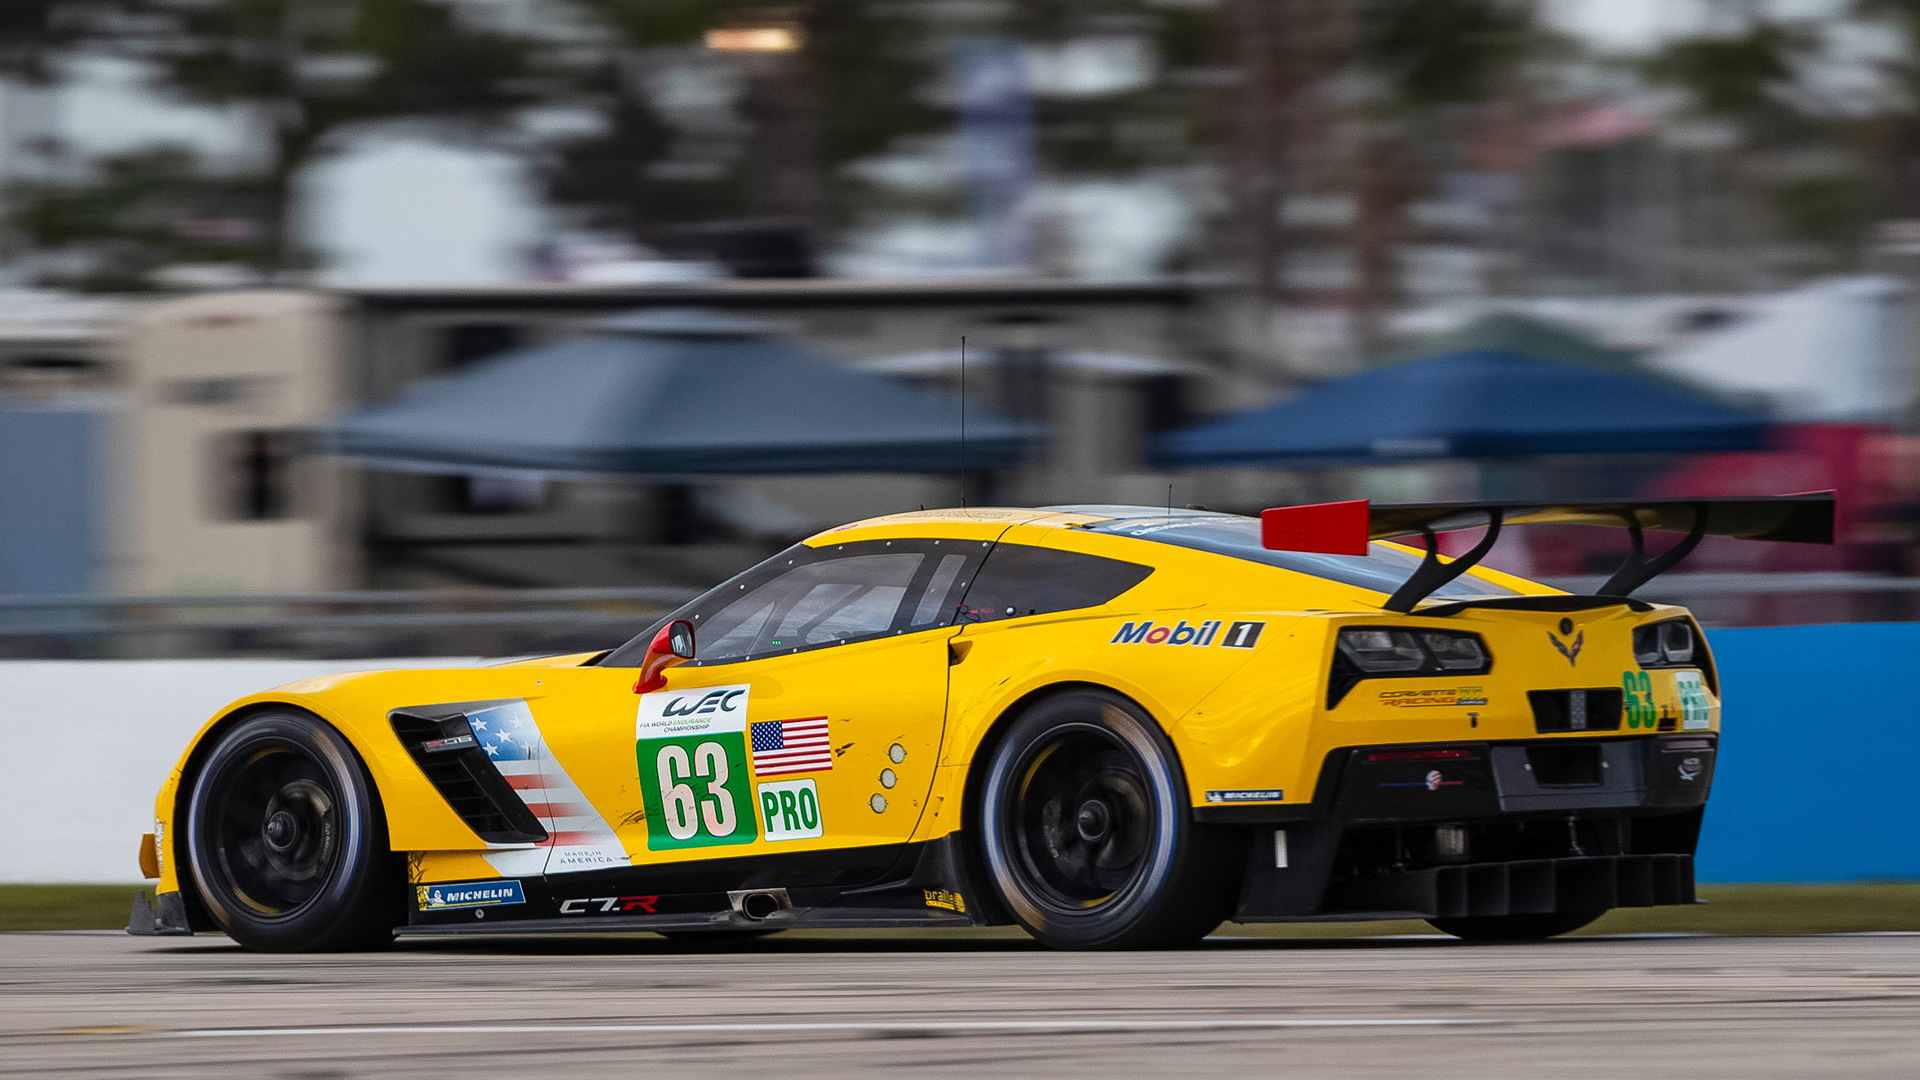 Chevrolet Corvette C7.R race car